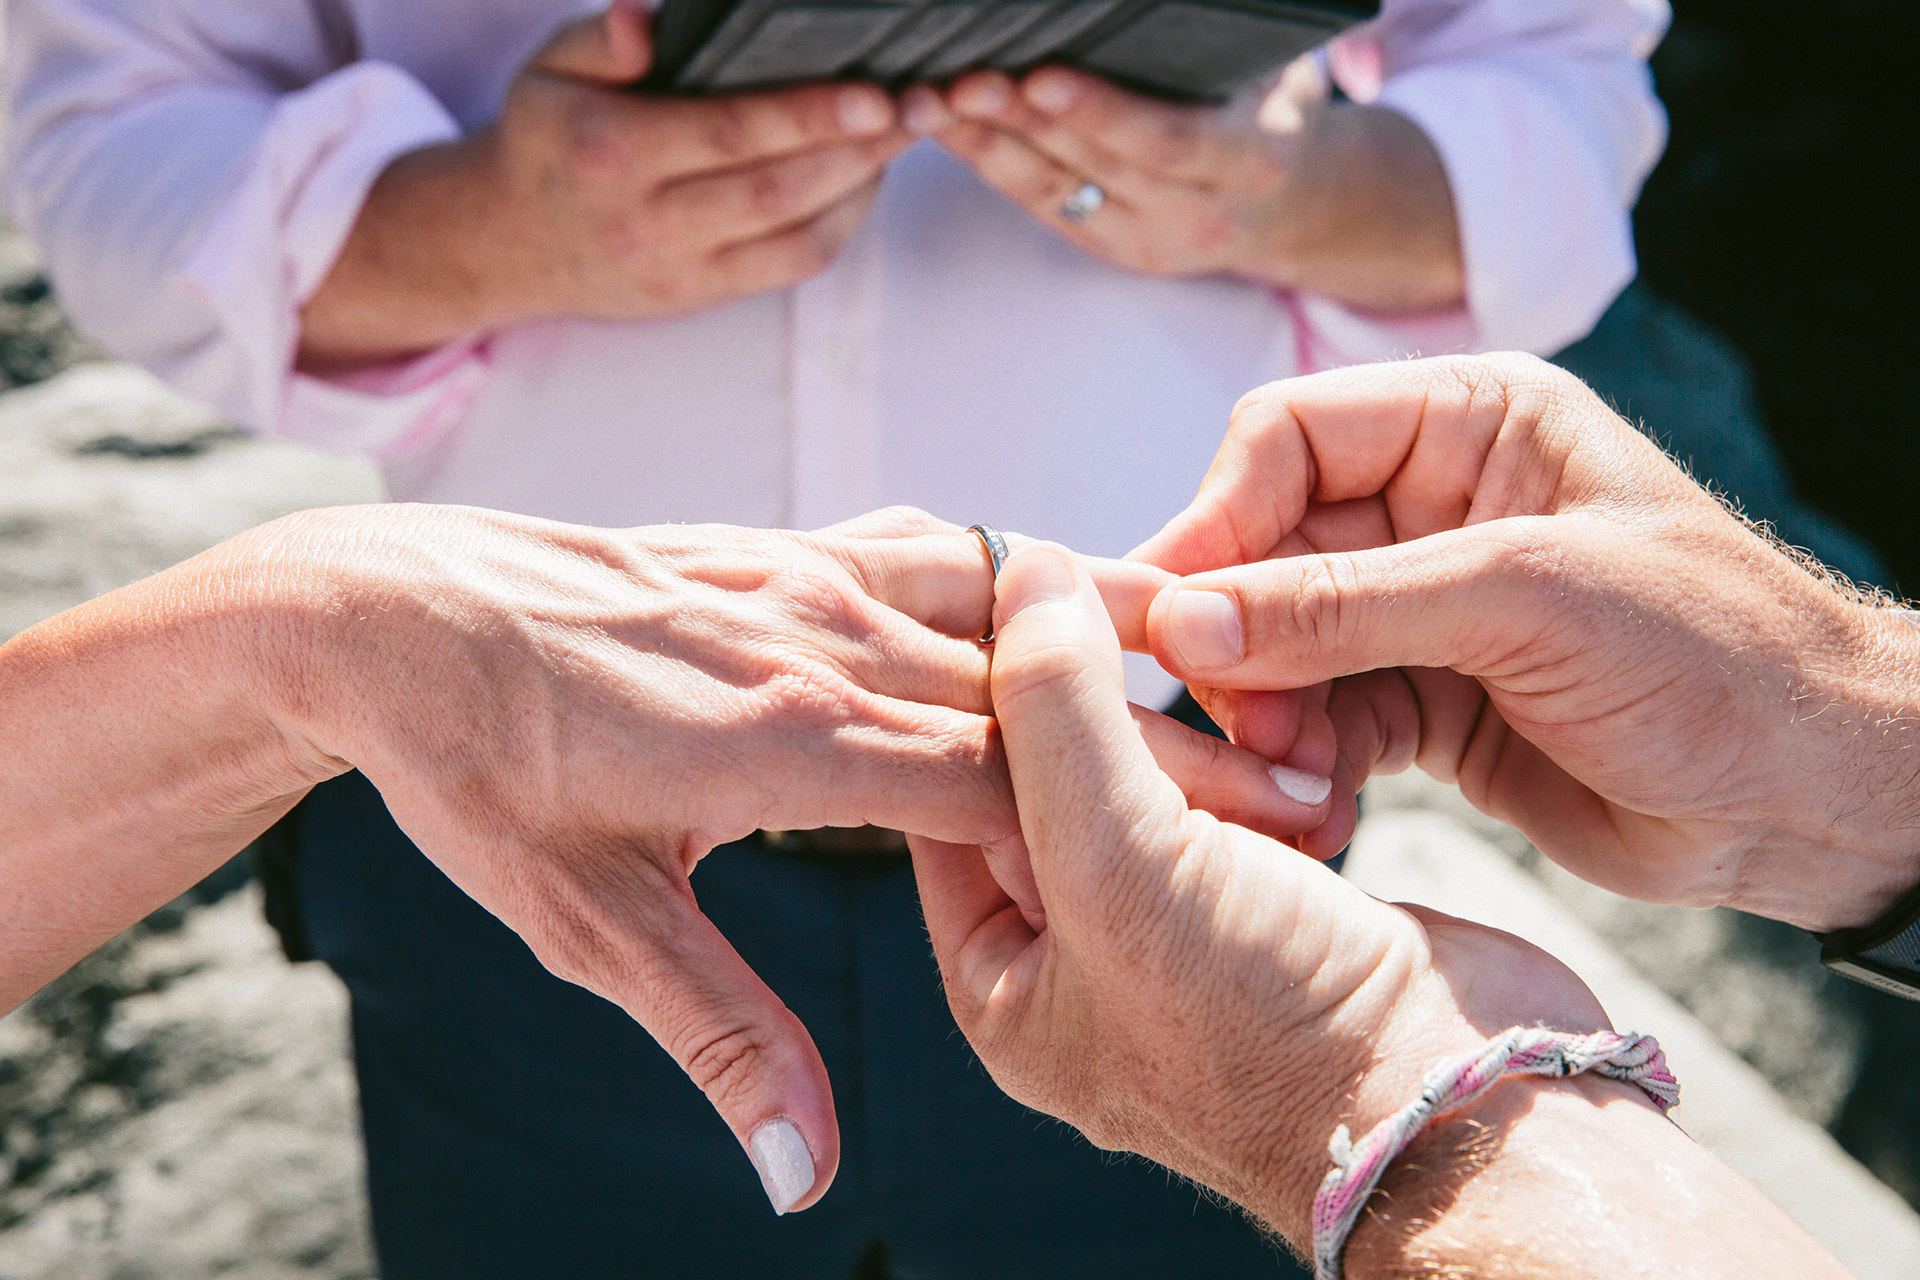 Vernazza Wedding Rings Ceremony - Italy Elopement Detail Image | The rings were exchanged following the wedding vows.